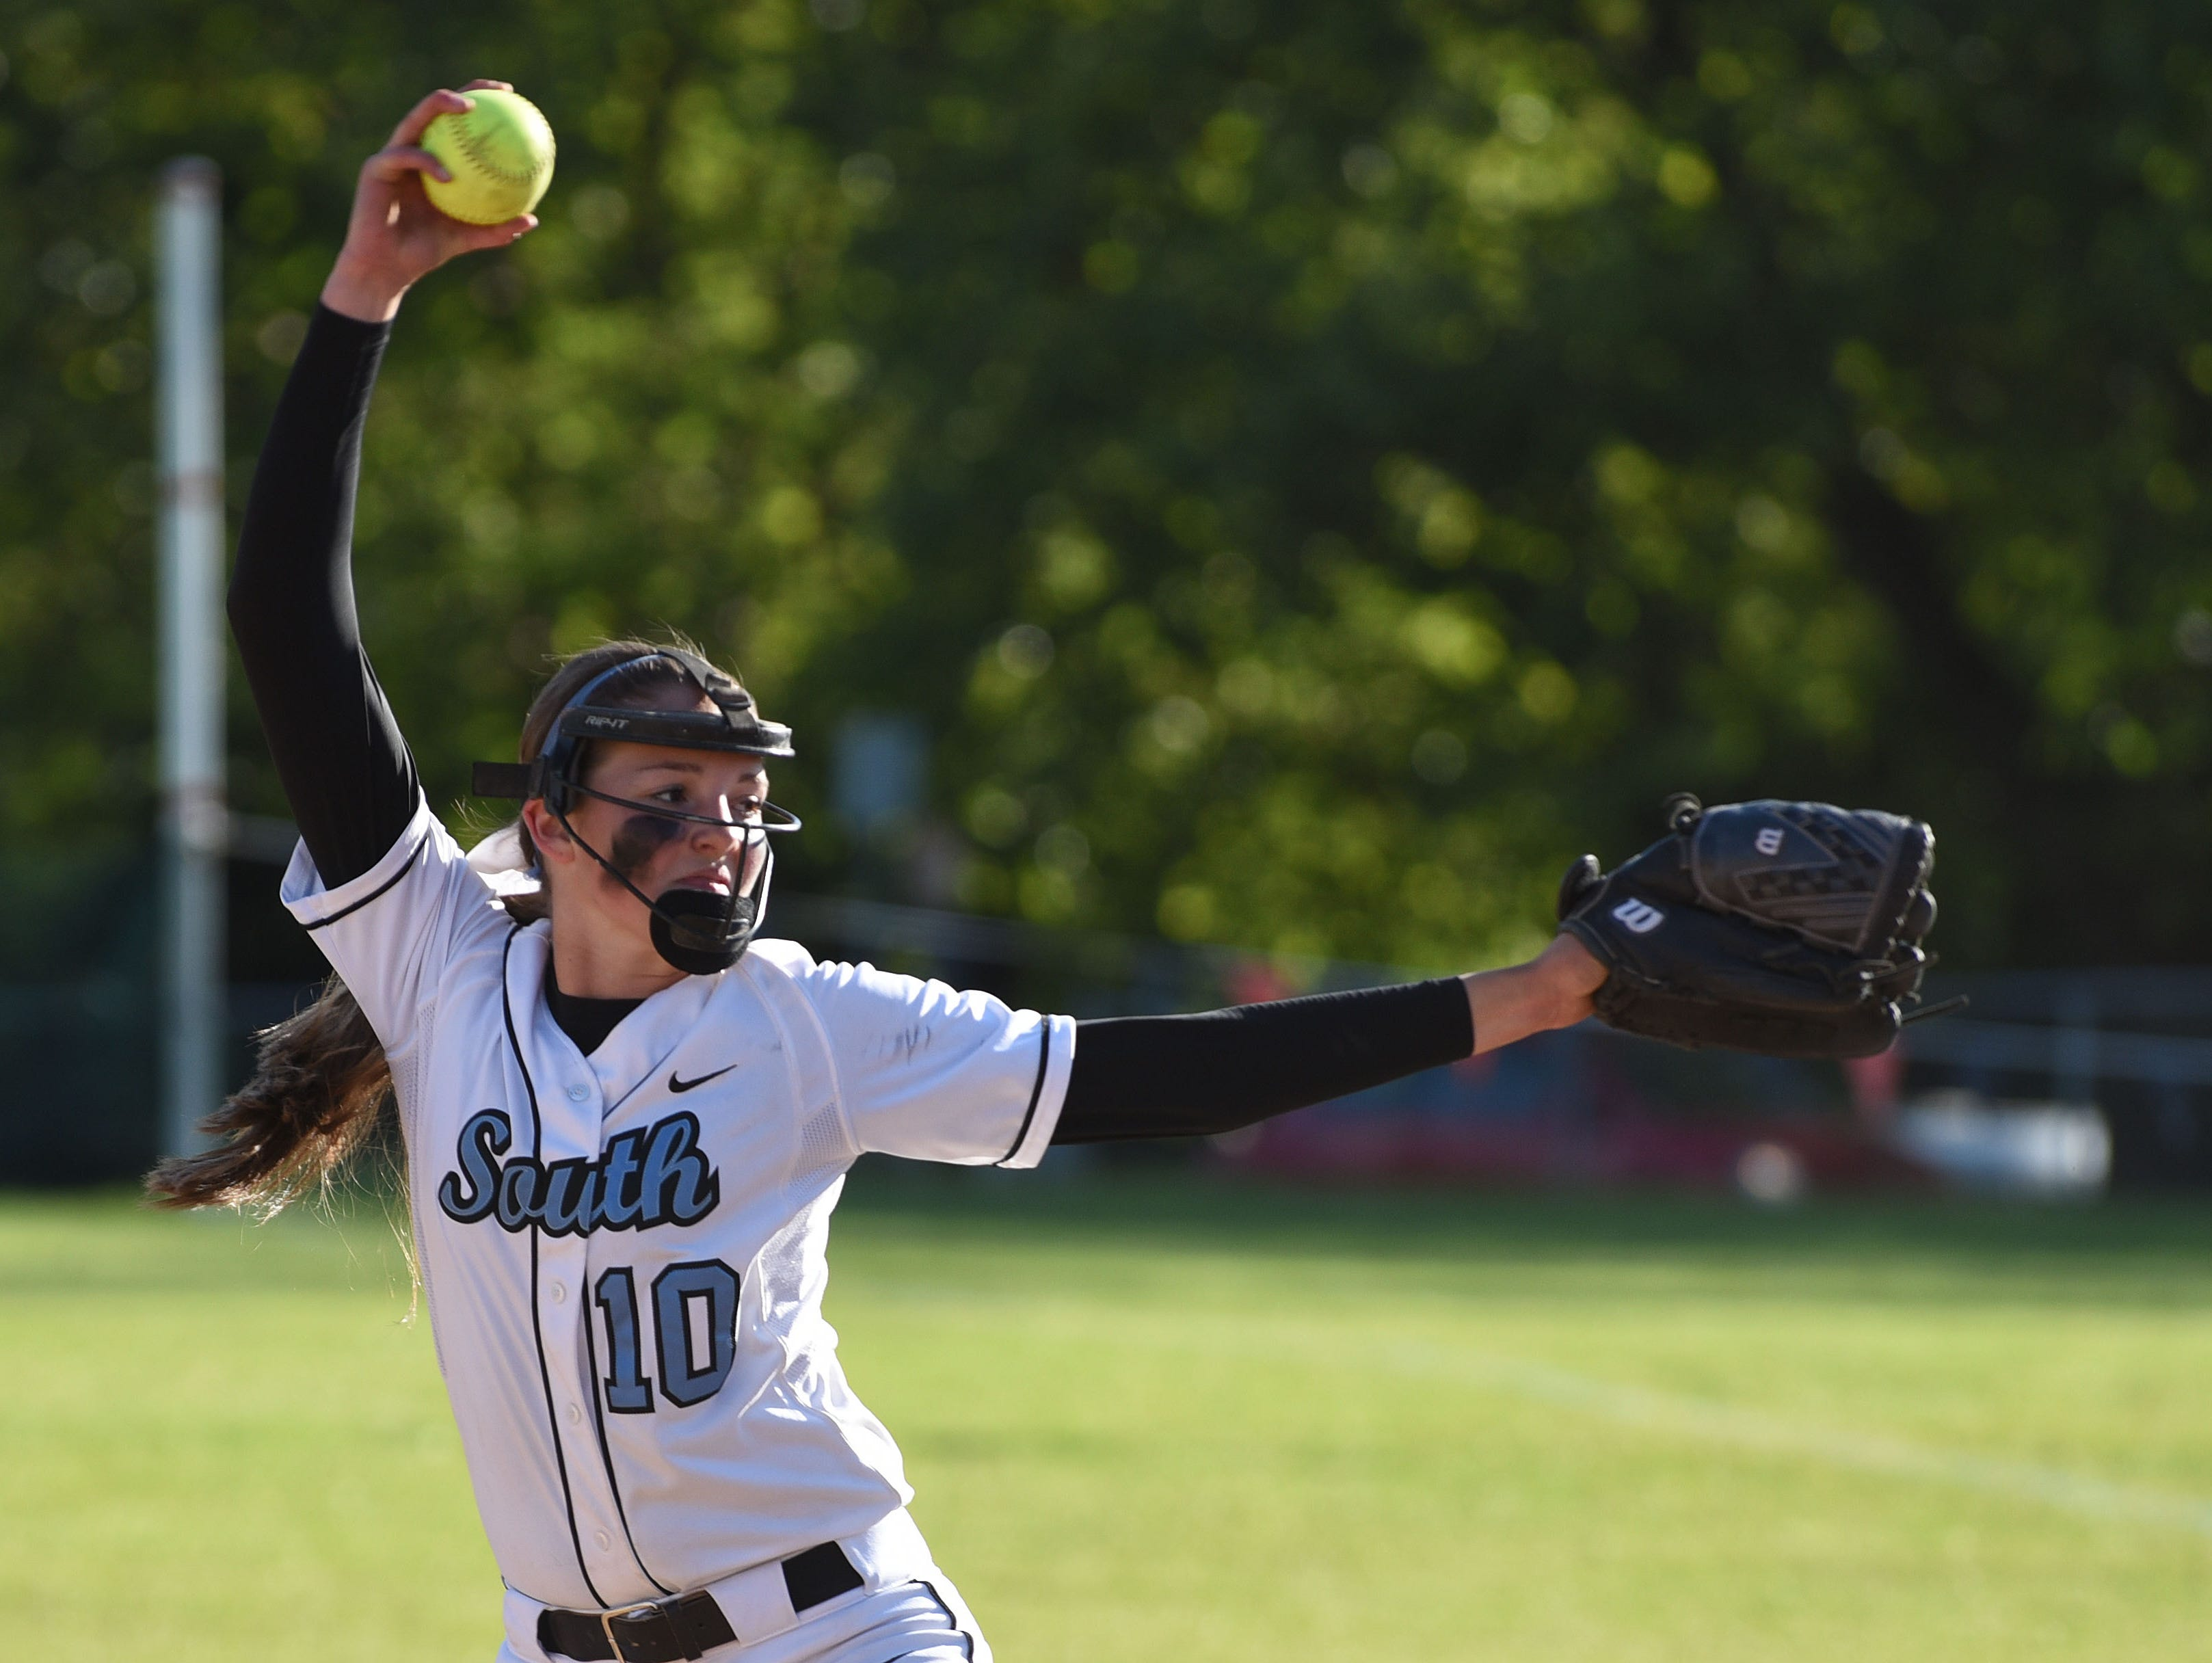 South Salem's Maygen McGrath pitches as the Saxons defeat Sprague 7-6 in the second round of the OSAA Class 6A state playoffs on Wednesday, May 27, 2015.